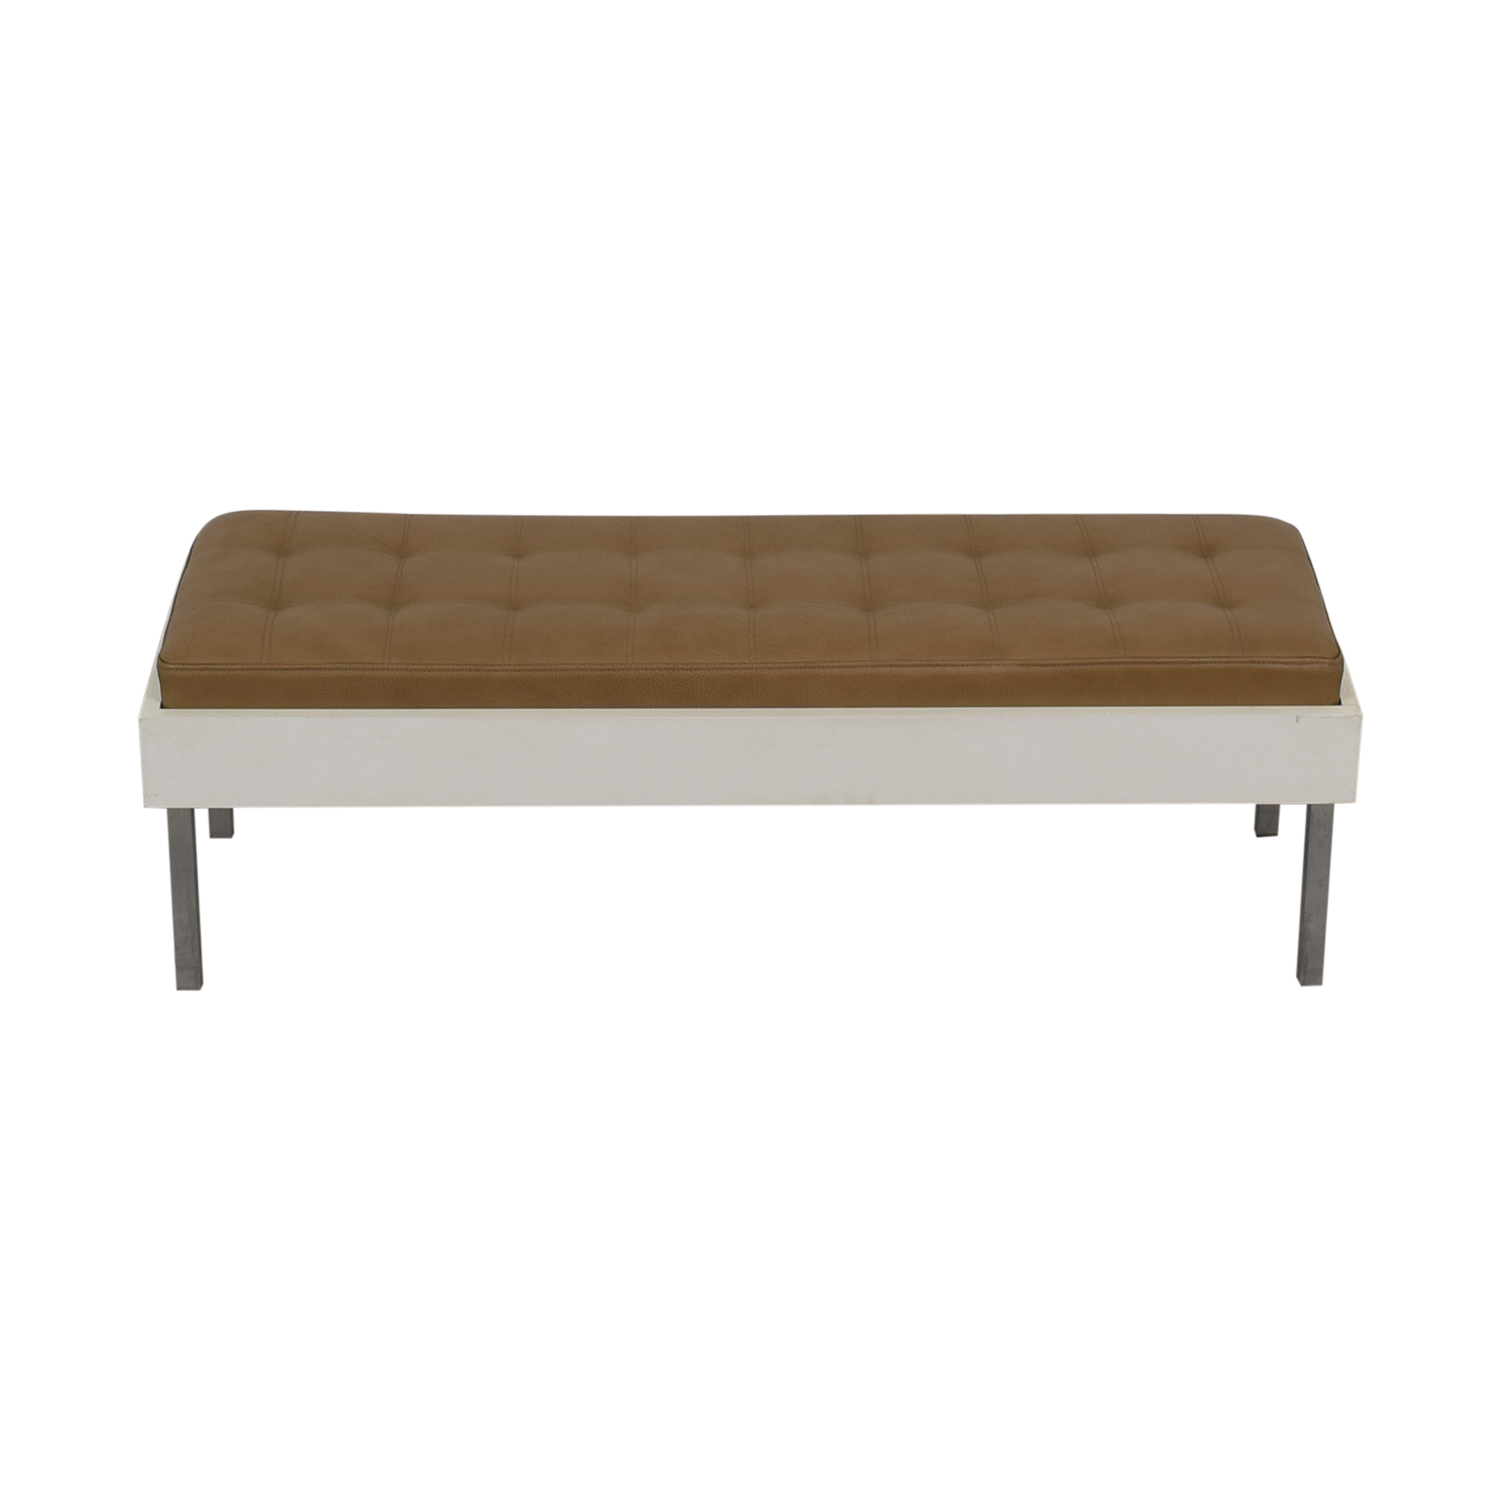 Furniture Masters Furniture Masters Wood and Leather Tufted Bench nyc